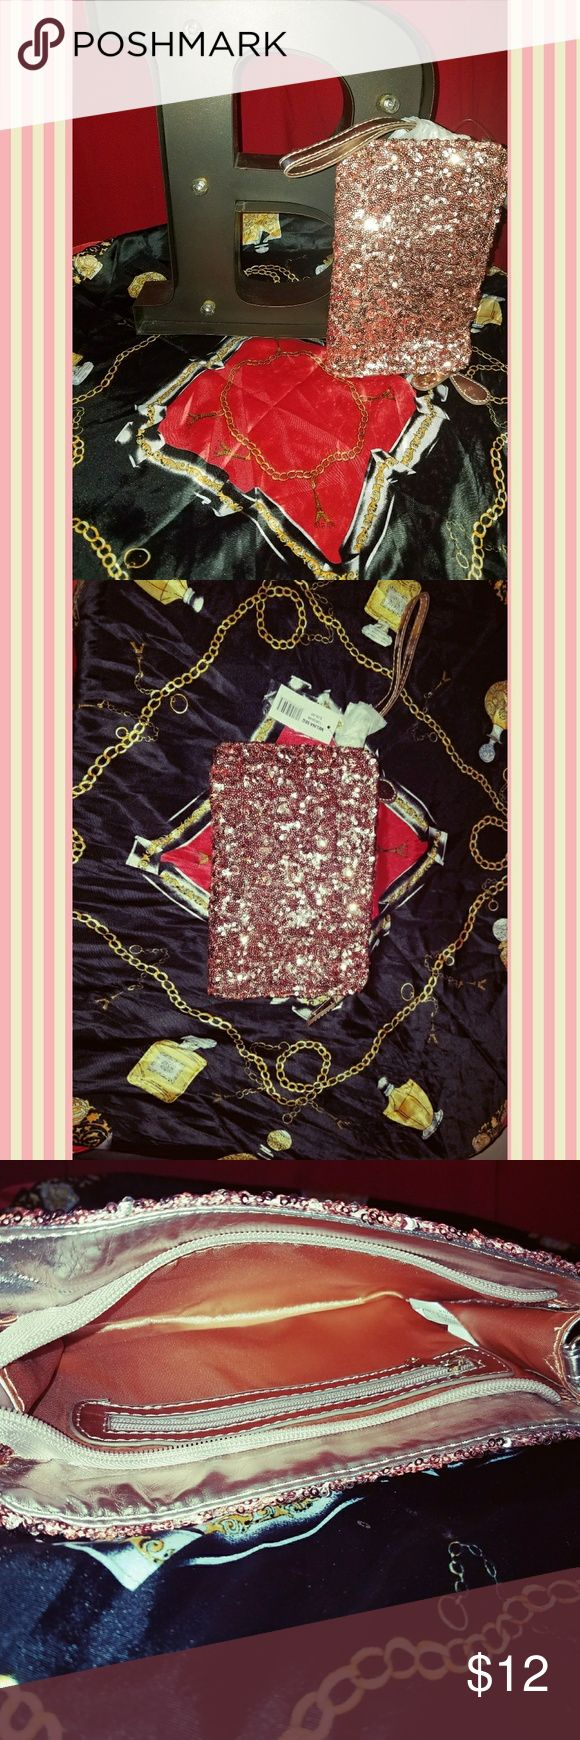 NWT Rose gold sequin clutch 👛 Rose gold sequin clutch - never used - bundle and save - fast shipping! Bakers Bags Clutches & Wristlets